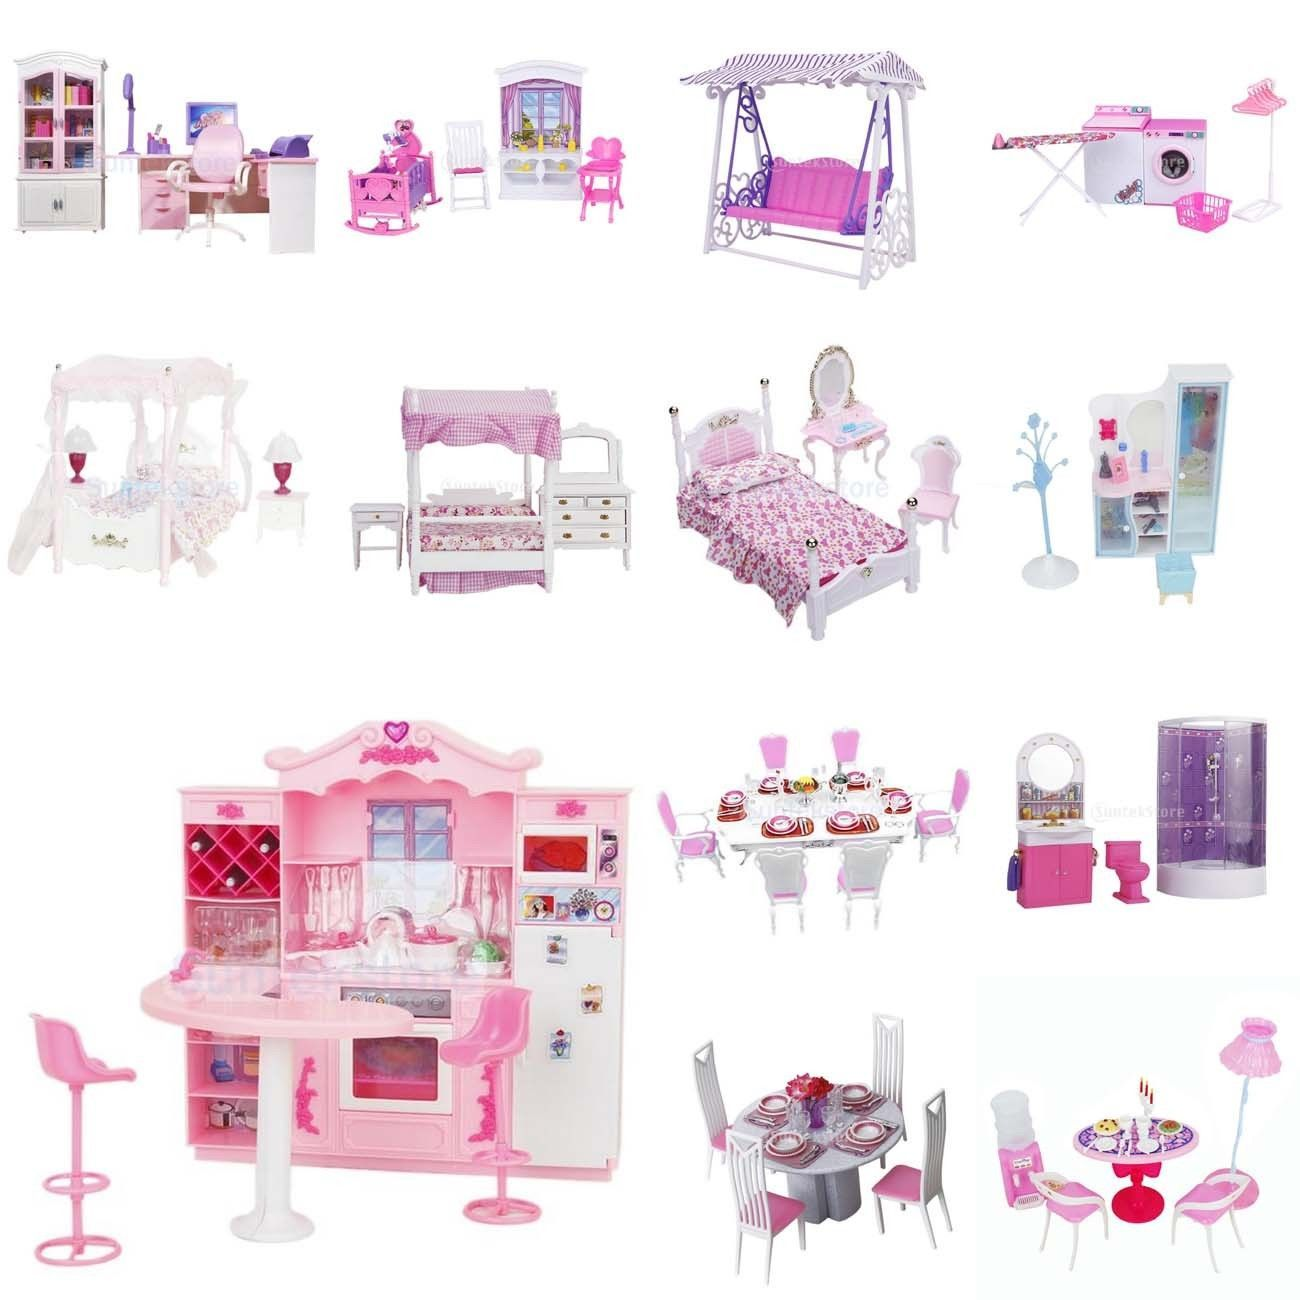 Luxury Plastic Furniture Play Set for Barbie Dolls House Kitchen ...